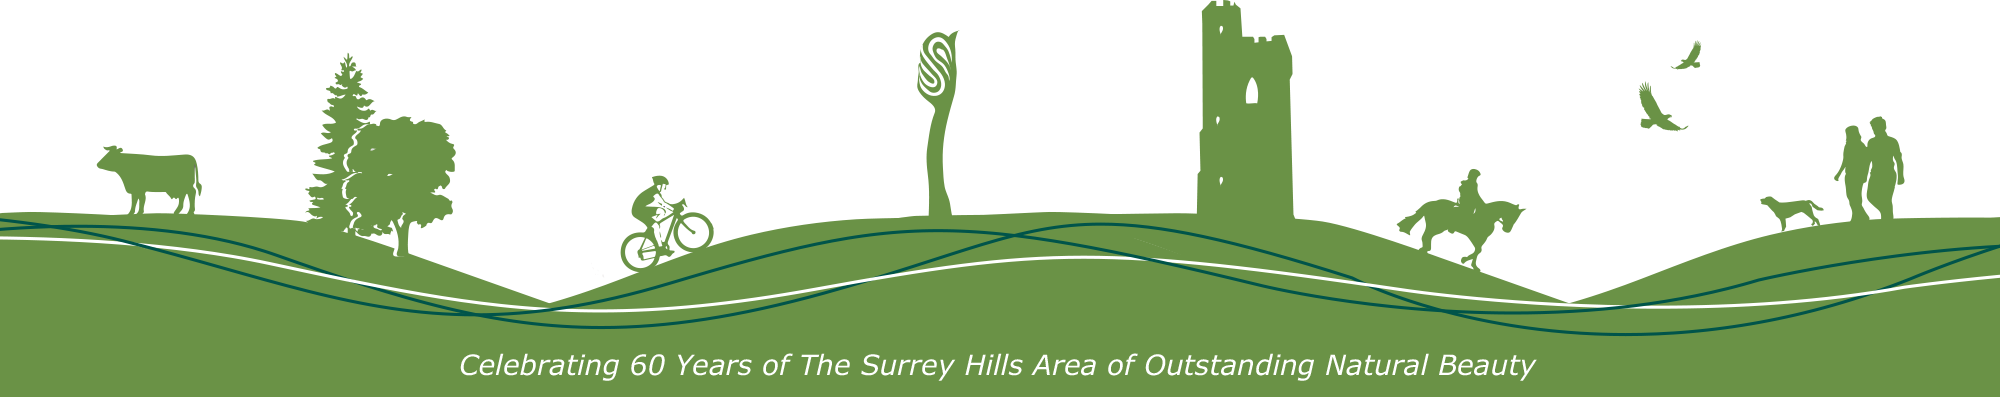 celebrating 60 Years of The Surrey Hills Area of Outstanding Natural Beauty